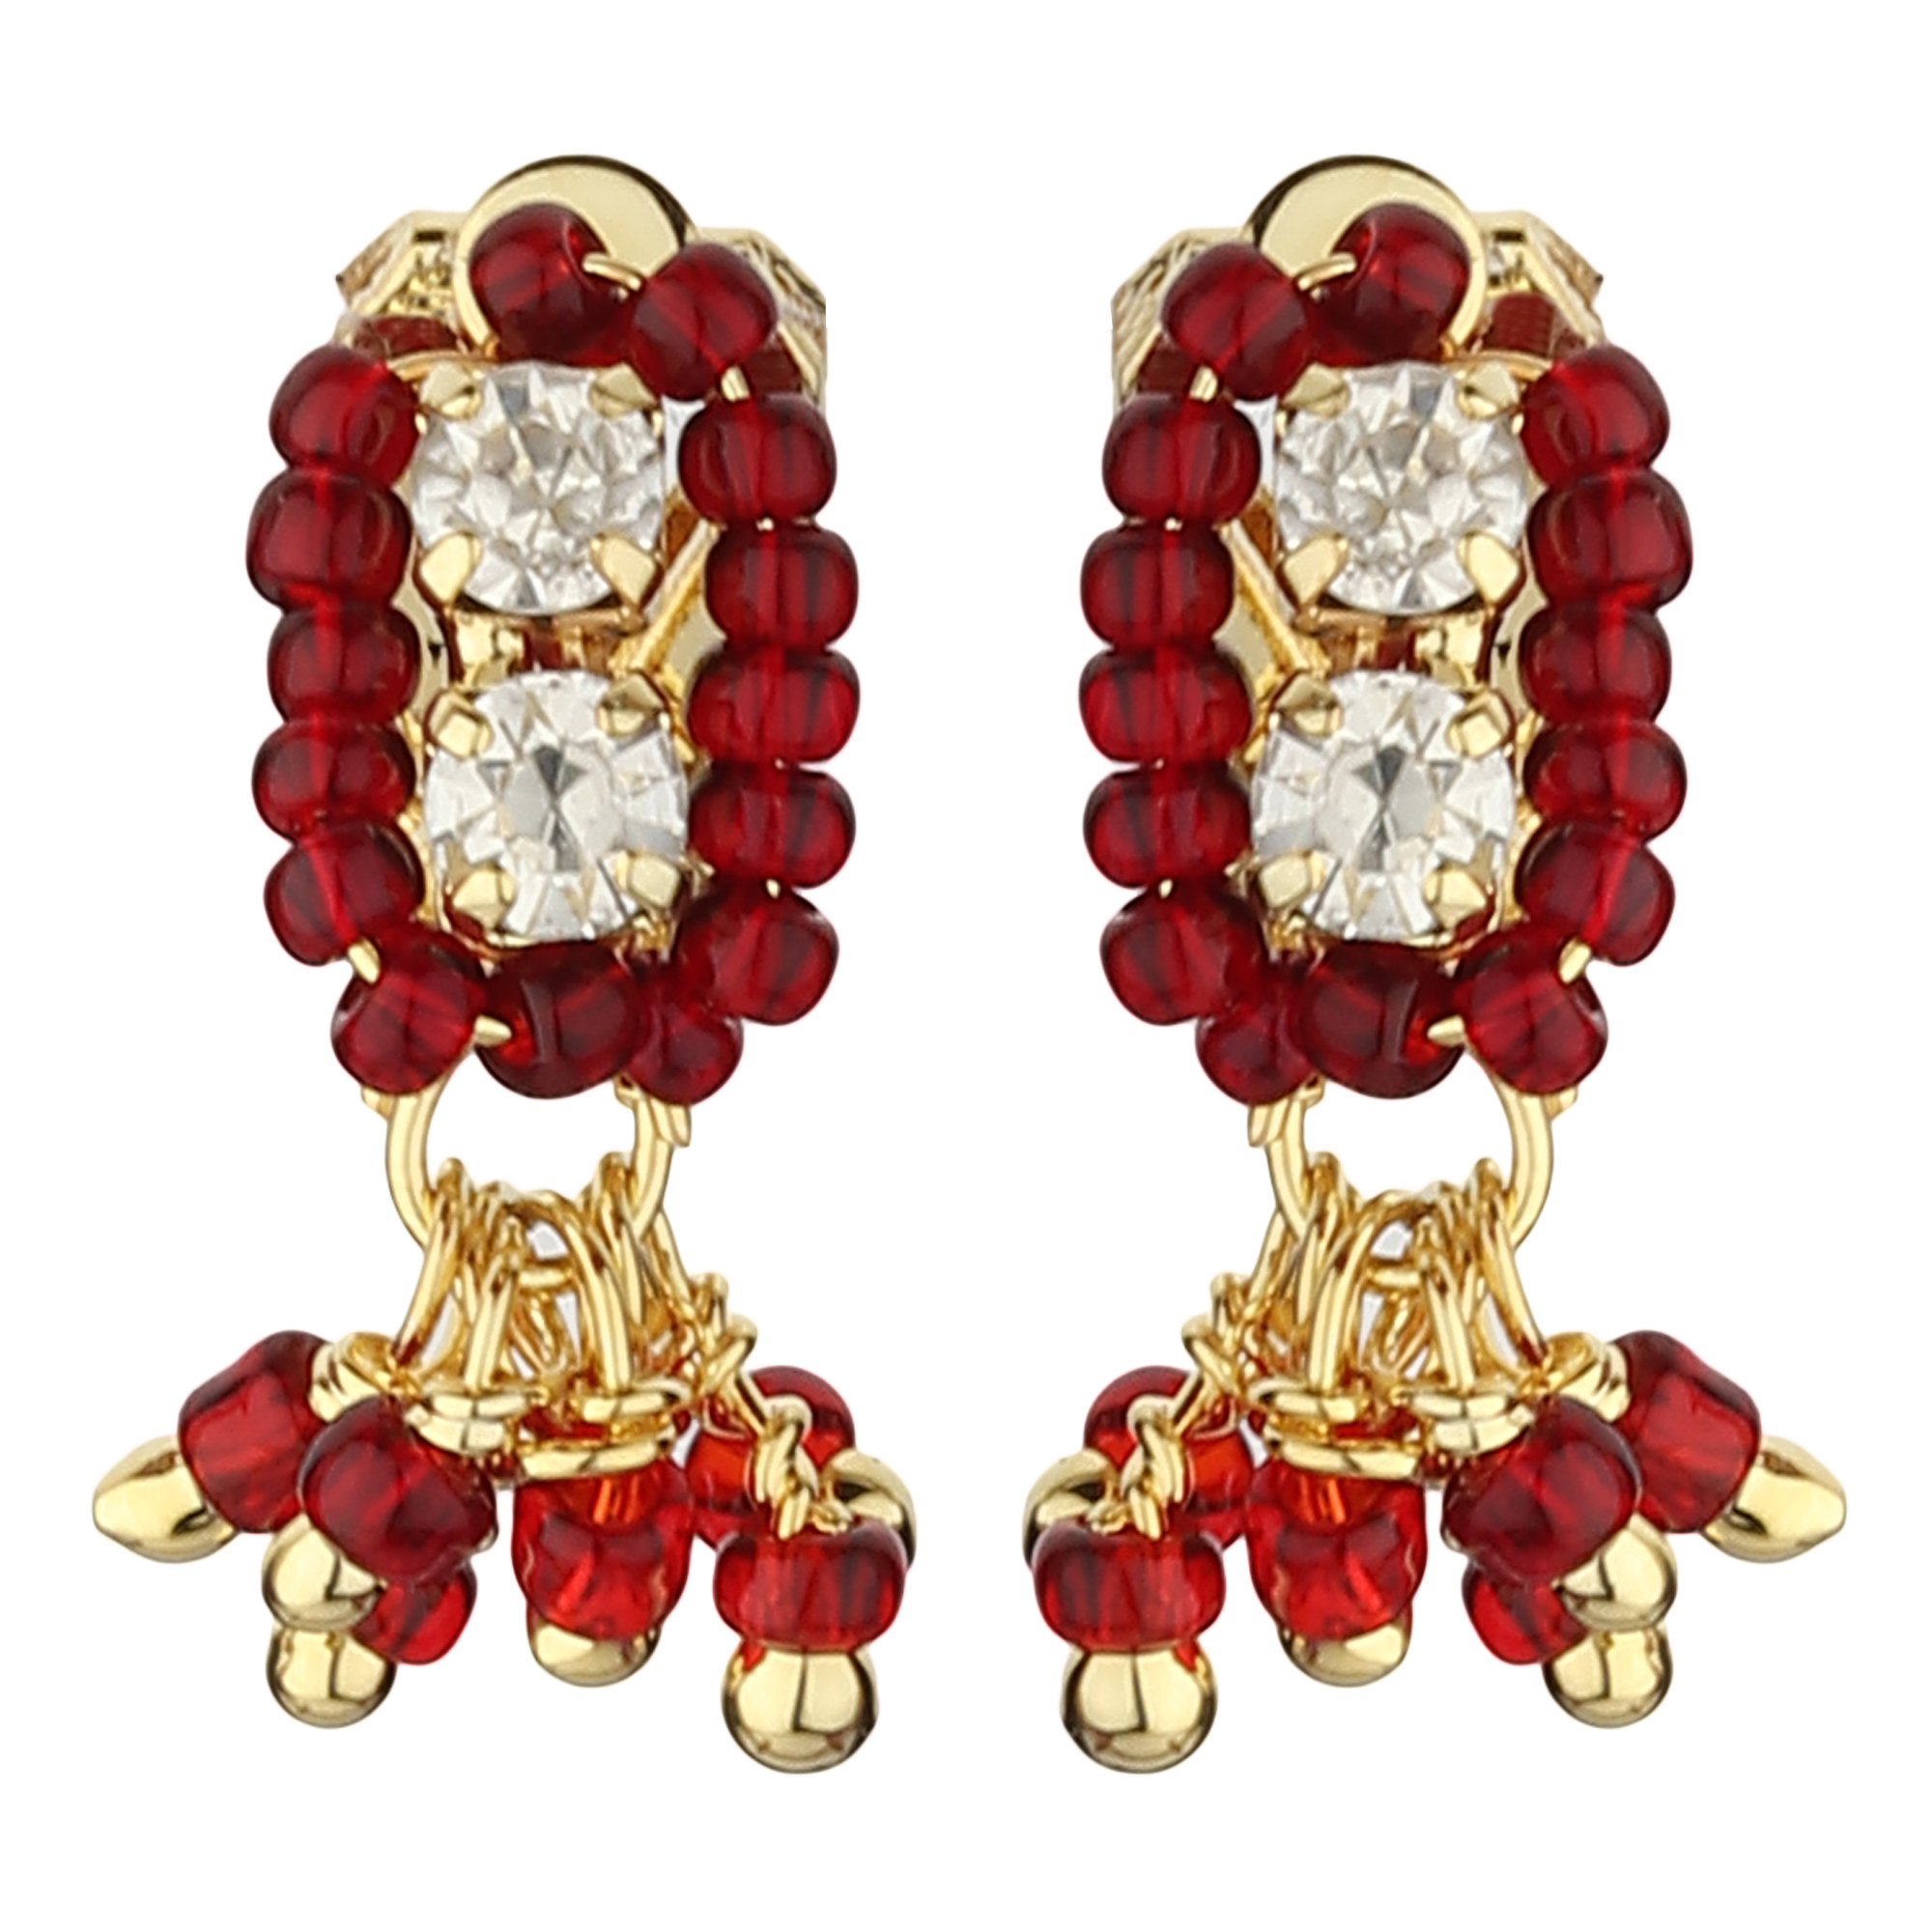 FirstBlush | FirstBlush Clip On Earrings for Non Piearced Ears for Women & Girls; Plating: Gold; Color: Maroon; Size: 20 X 8mm; Wt.: 2gm. (MIEC104M114)